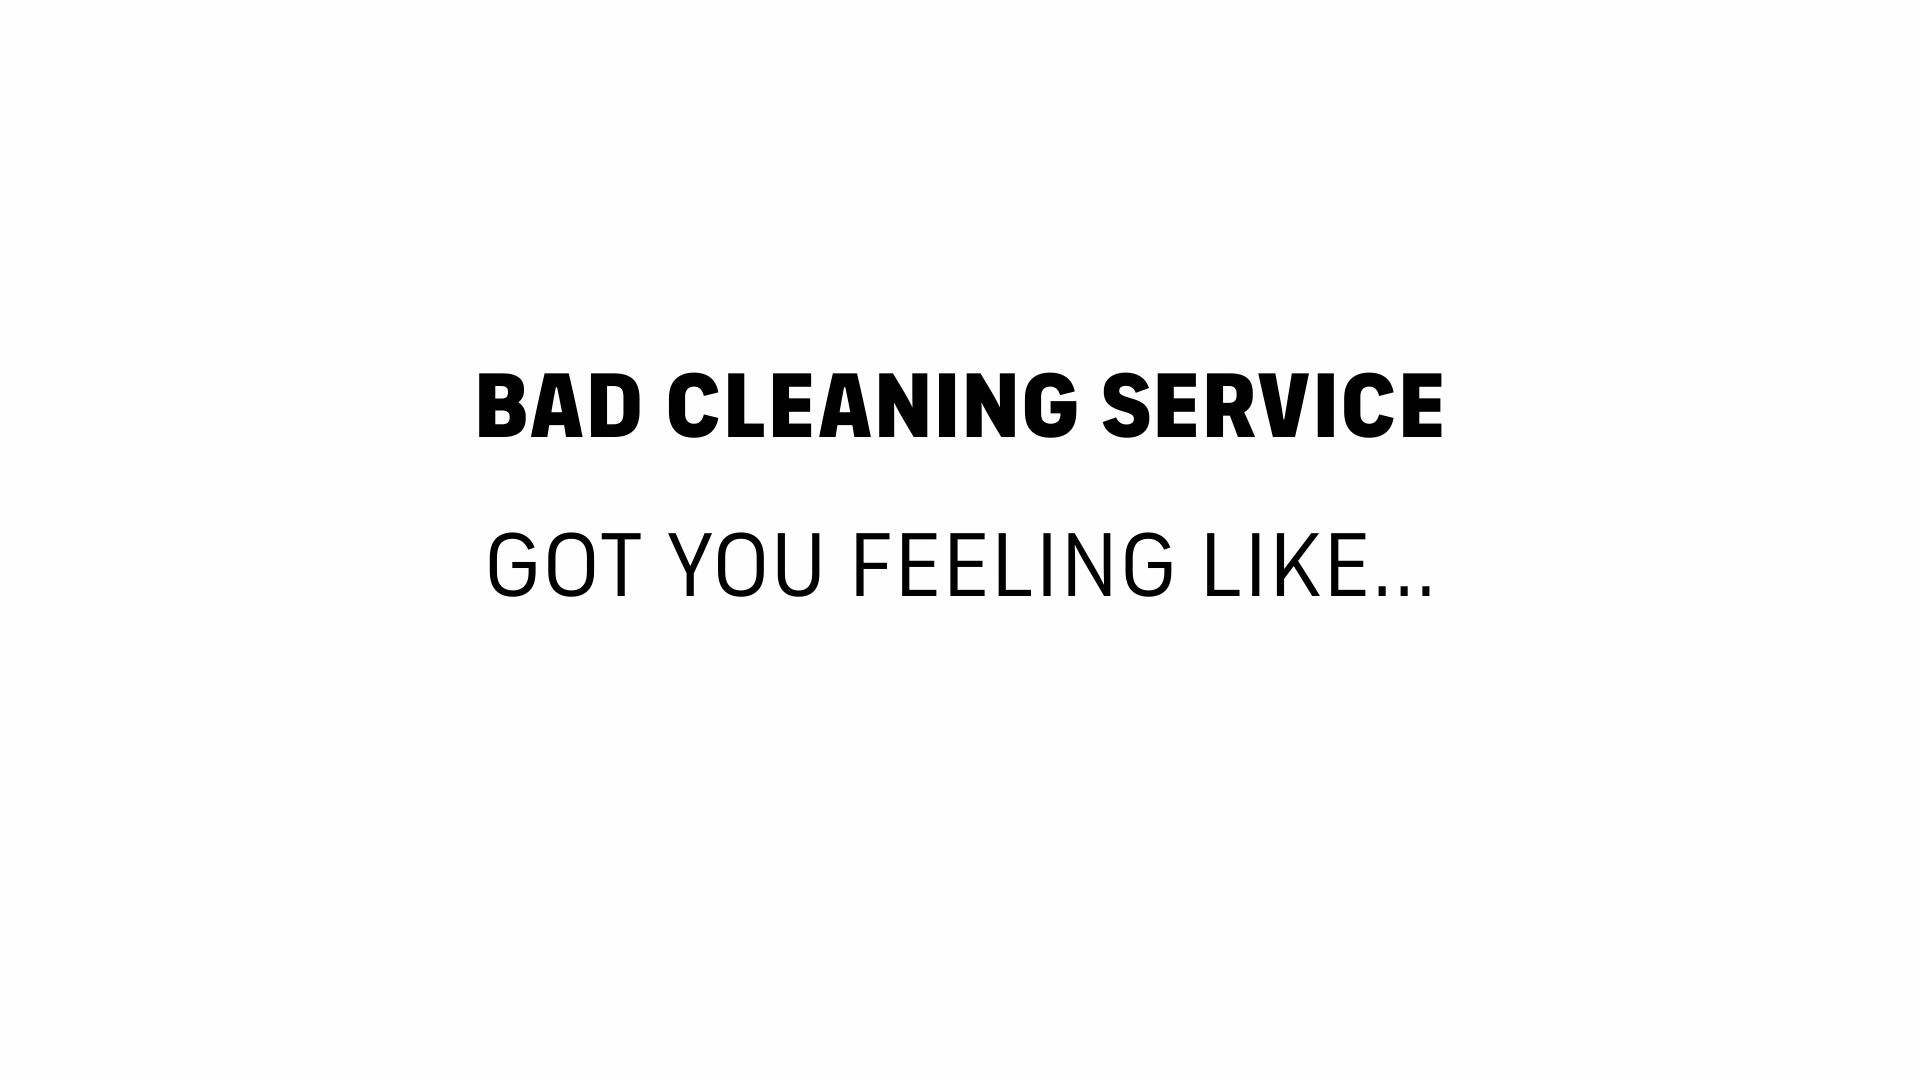 Are you ready for results? look no further! . . . #cleanhome #diyfails #carpetcleaning #tilecleaning #tilesealing #homedetailing #remarkableresults #rugcleaning #matresscleaning #coronavirus #antimicrobialcleaning #kitchencleaning